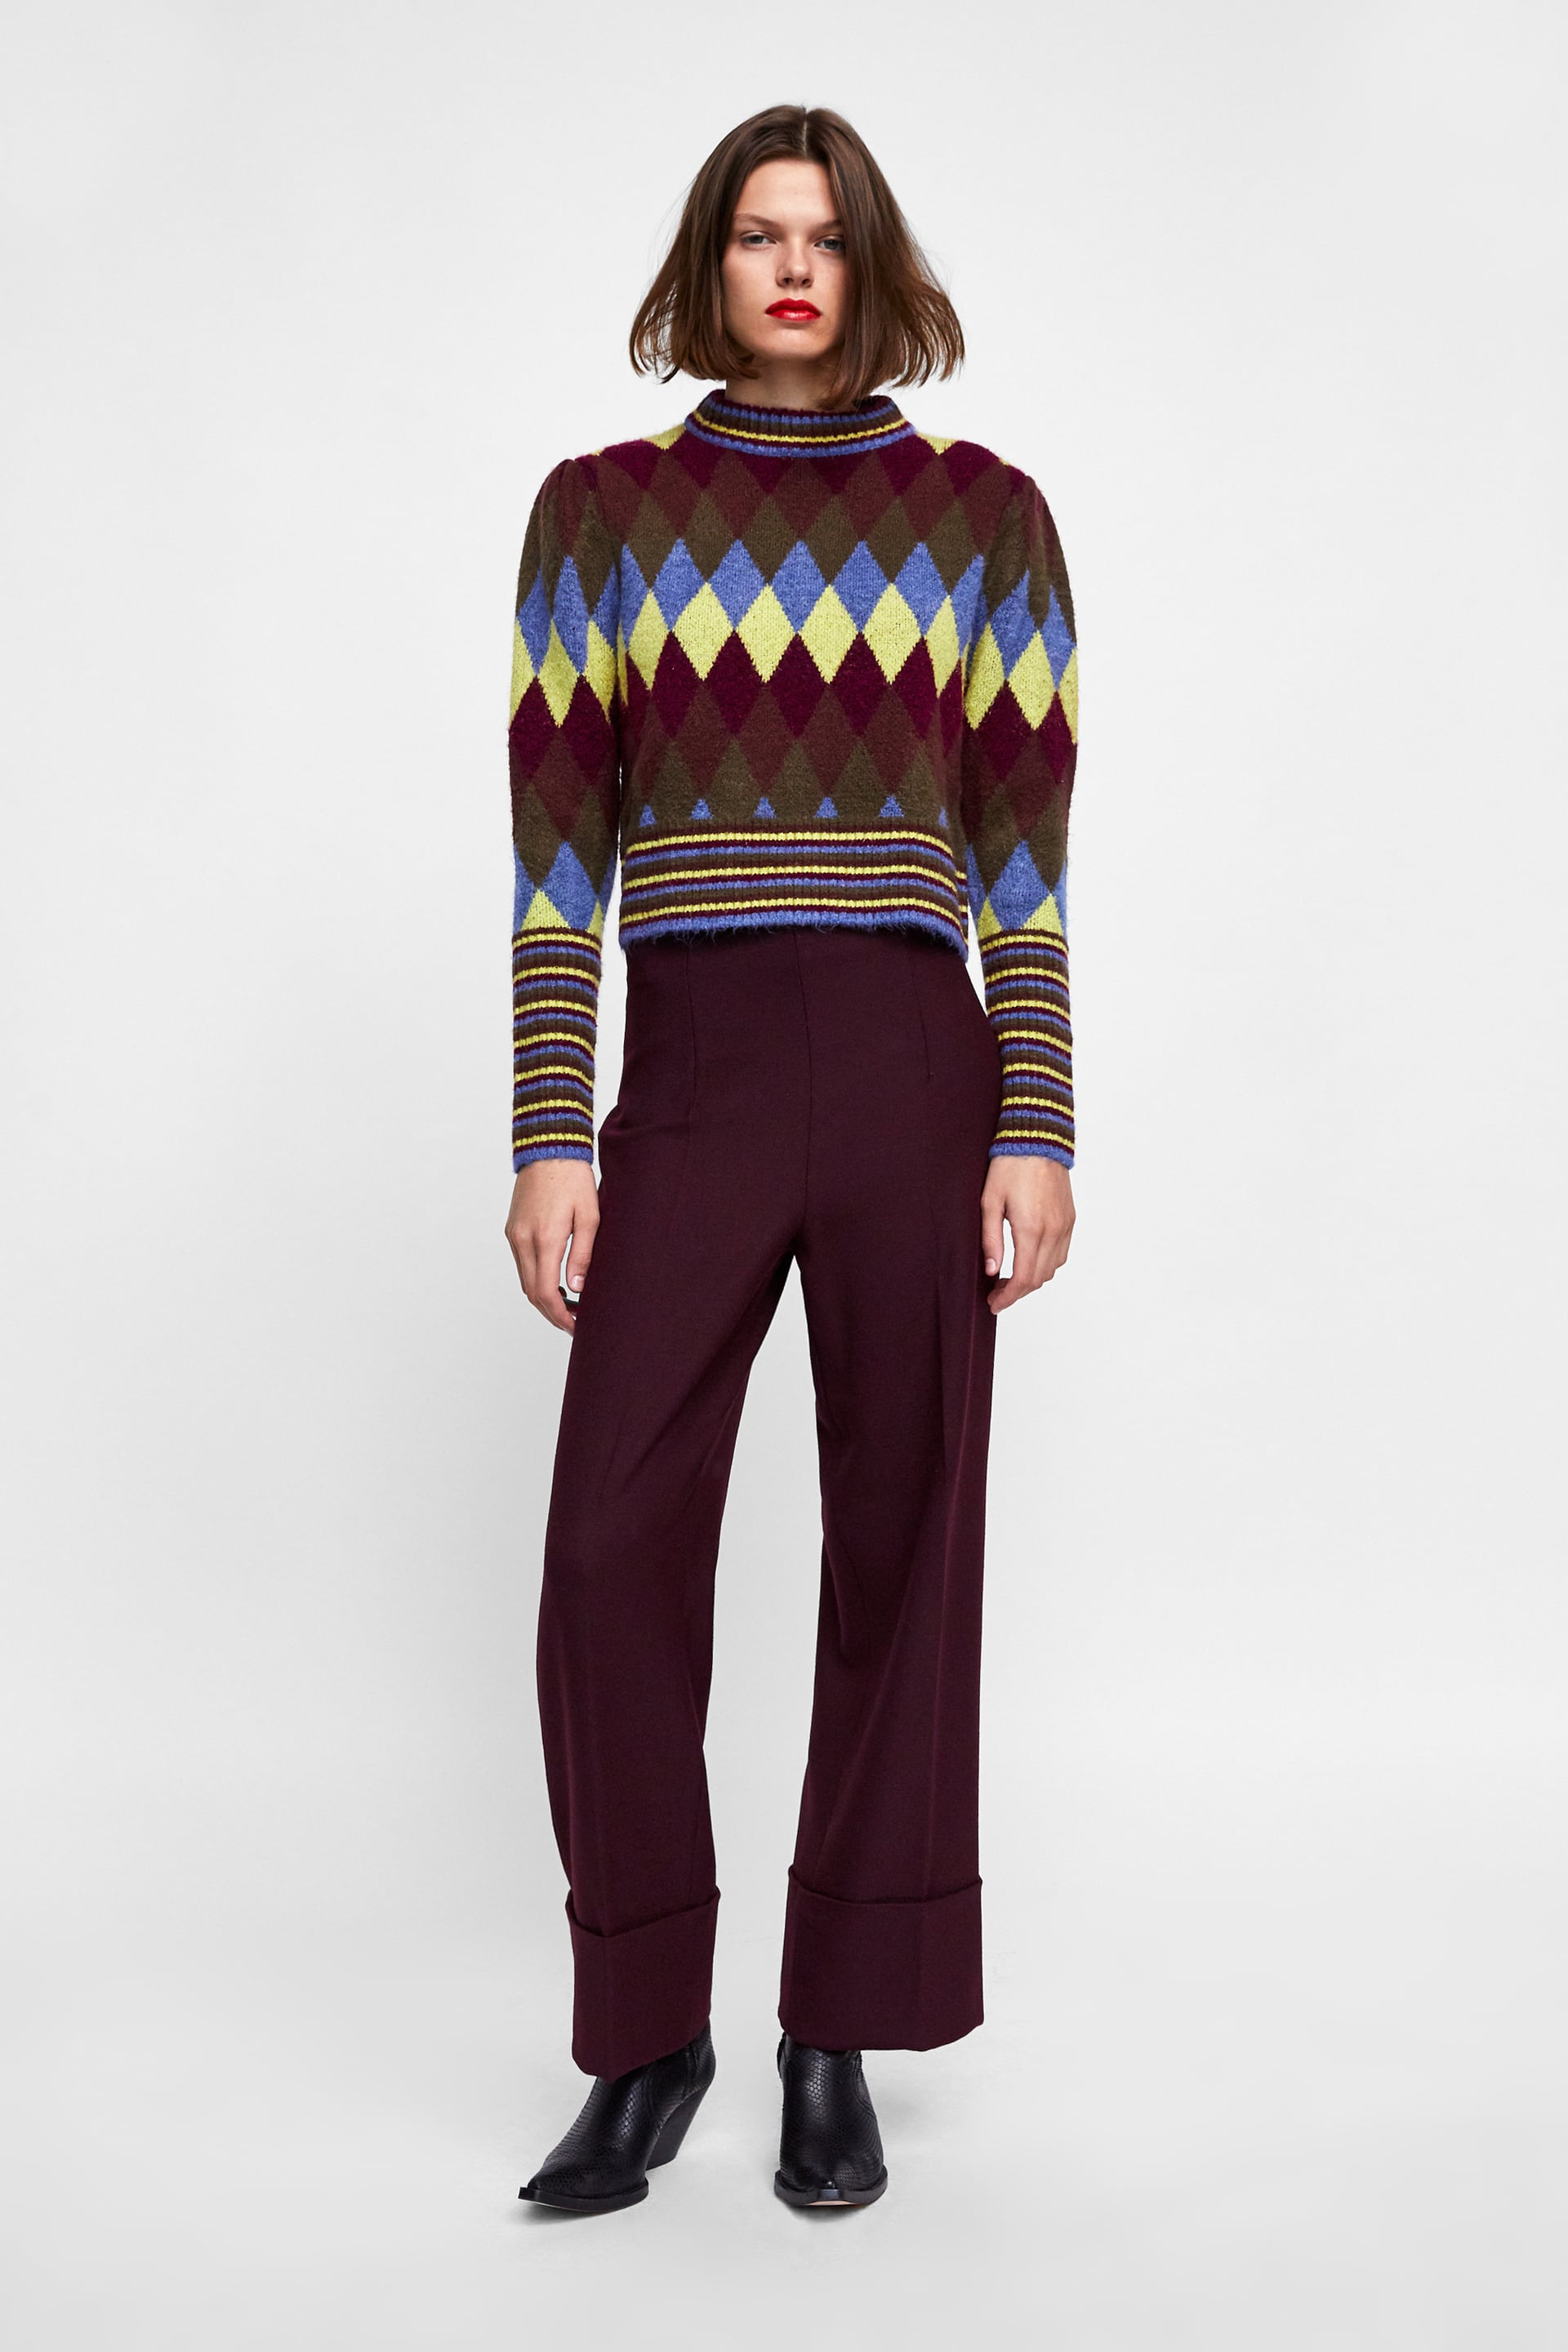 e88f10ea17e Cheap Zara Knitwear To Buy This Fall